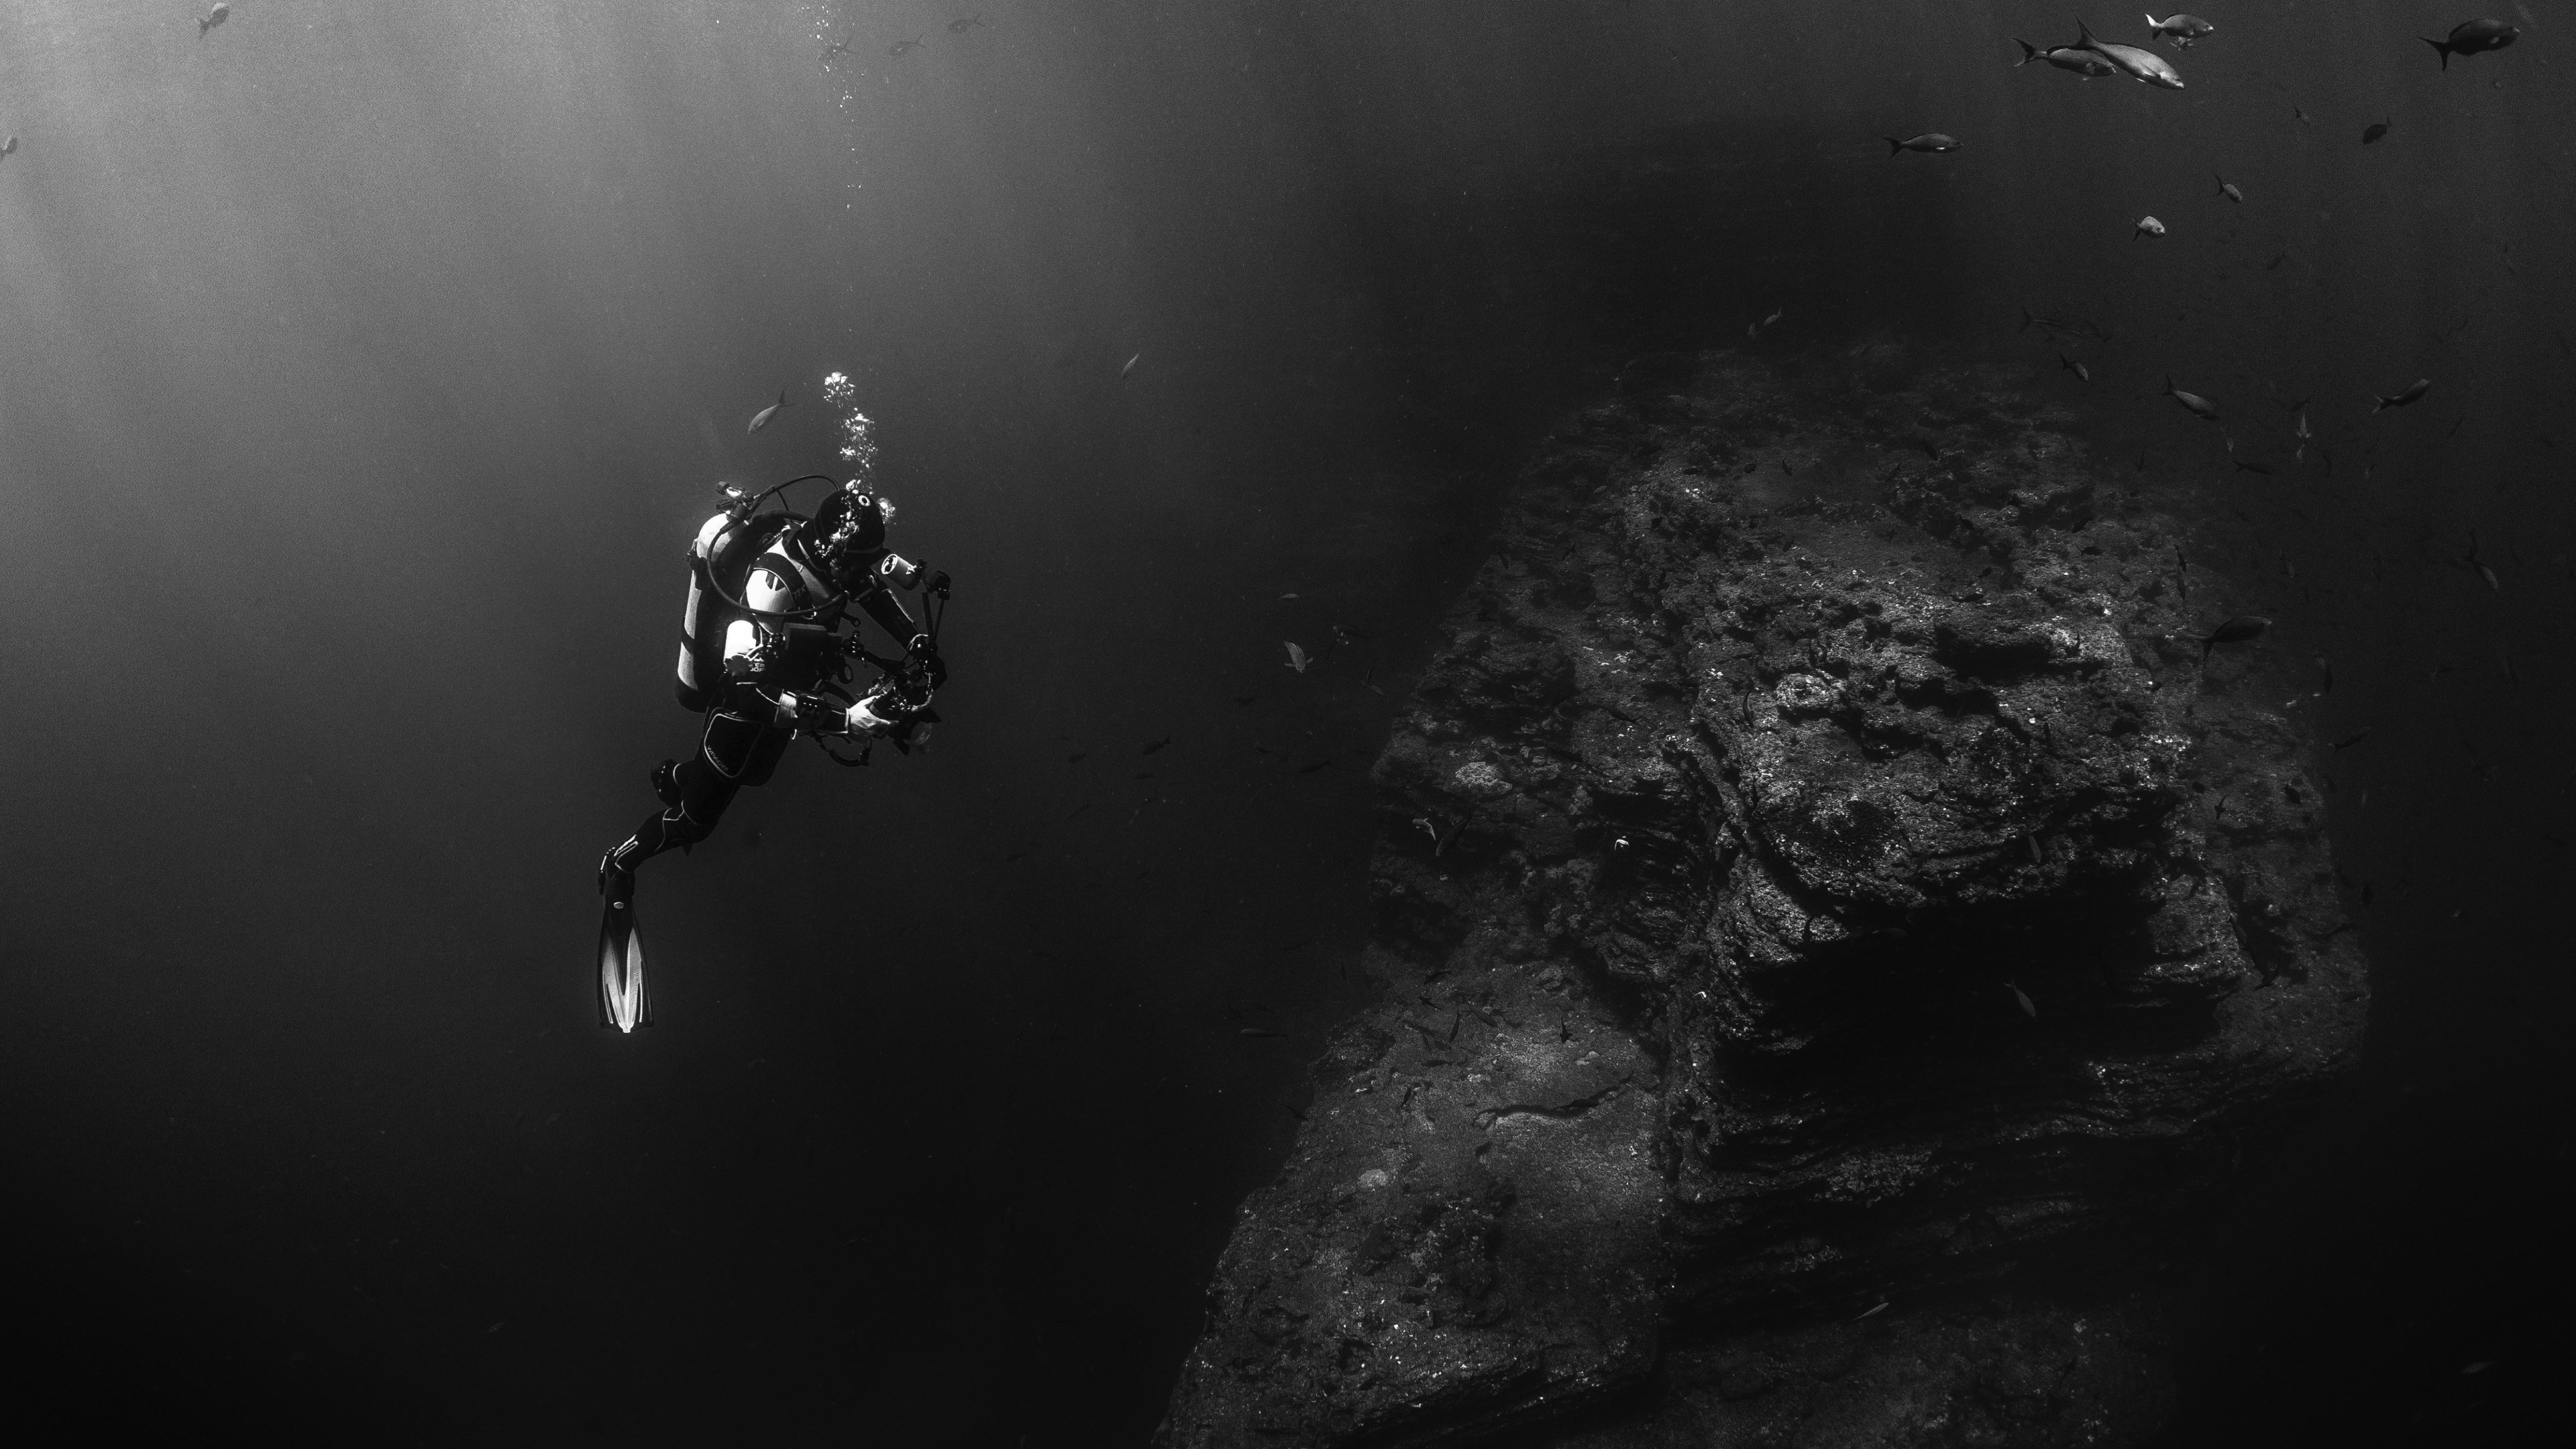 Diver in the Pacific Ocean wallpaper 3840x2160